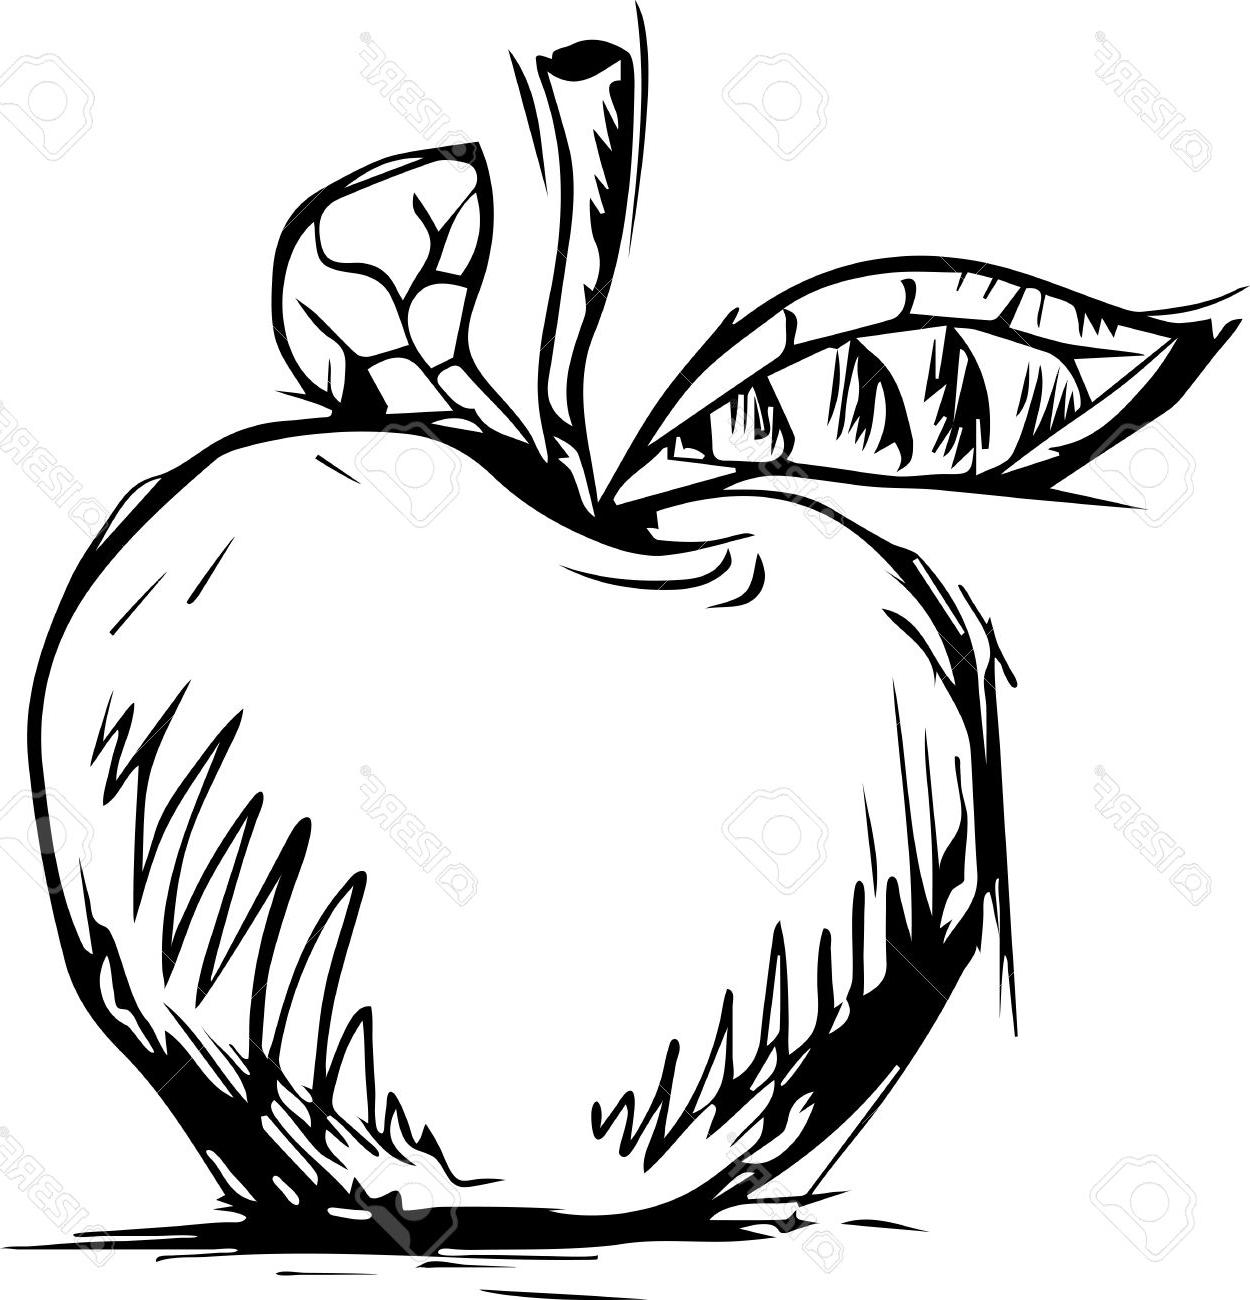 1250x1300 Best Hd Apple Graphic Sketch Vector Isolated On White Stock Library